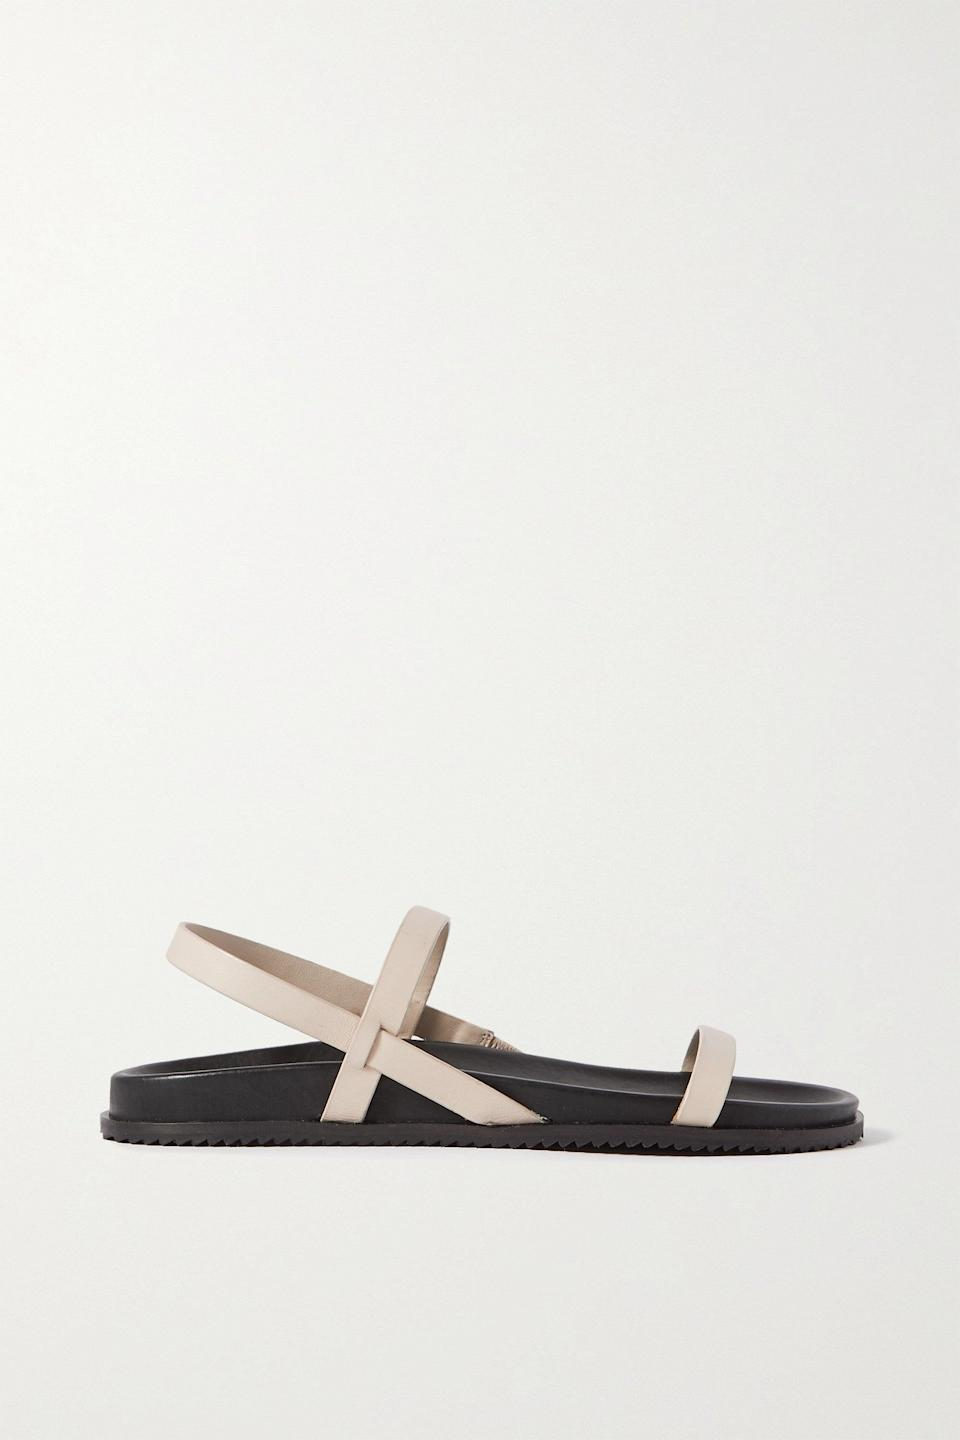 """I clicked buy so quickly on these, they are the perfect everyday sandal (alongside Birks, of course). <br><br><strong>St. Agni</strong> Gio Two-tone Leather Slingback Sandals, $, available at <a href=""""https://www.net-a-porter.com/en-gb/shop/product/st-agni/net-sustain-gio-two-tone-leather-slingback-sandals/1321491"""" rel=""""nofollow noopener"""" target=""""_blank"""" data-ylk=""""slk:Net-A-Porter"""" class=""""link rapid-noclick-resp"""">Net-A-Porter</a>"""